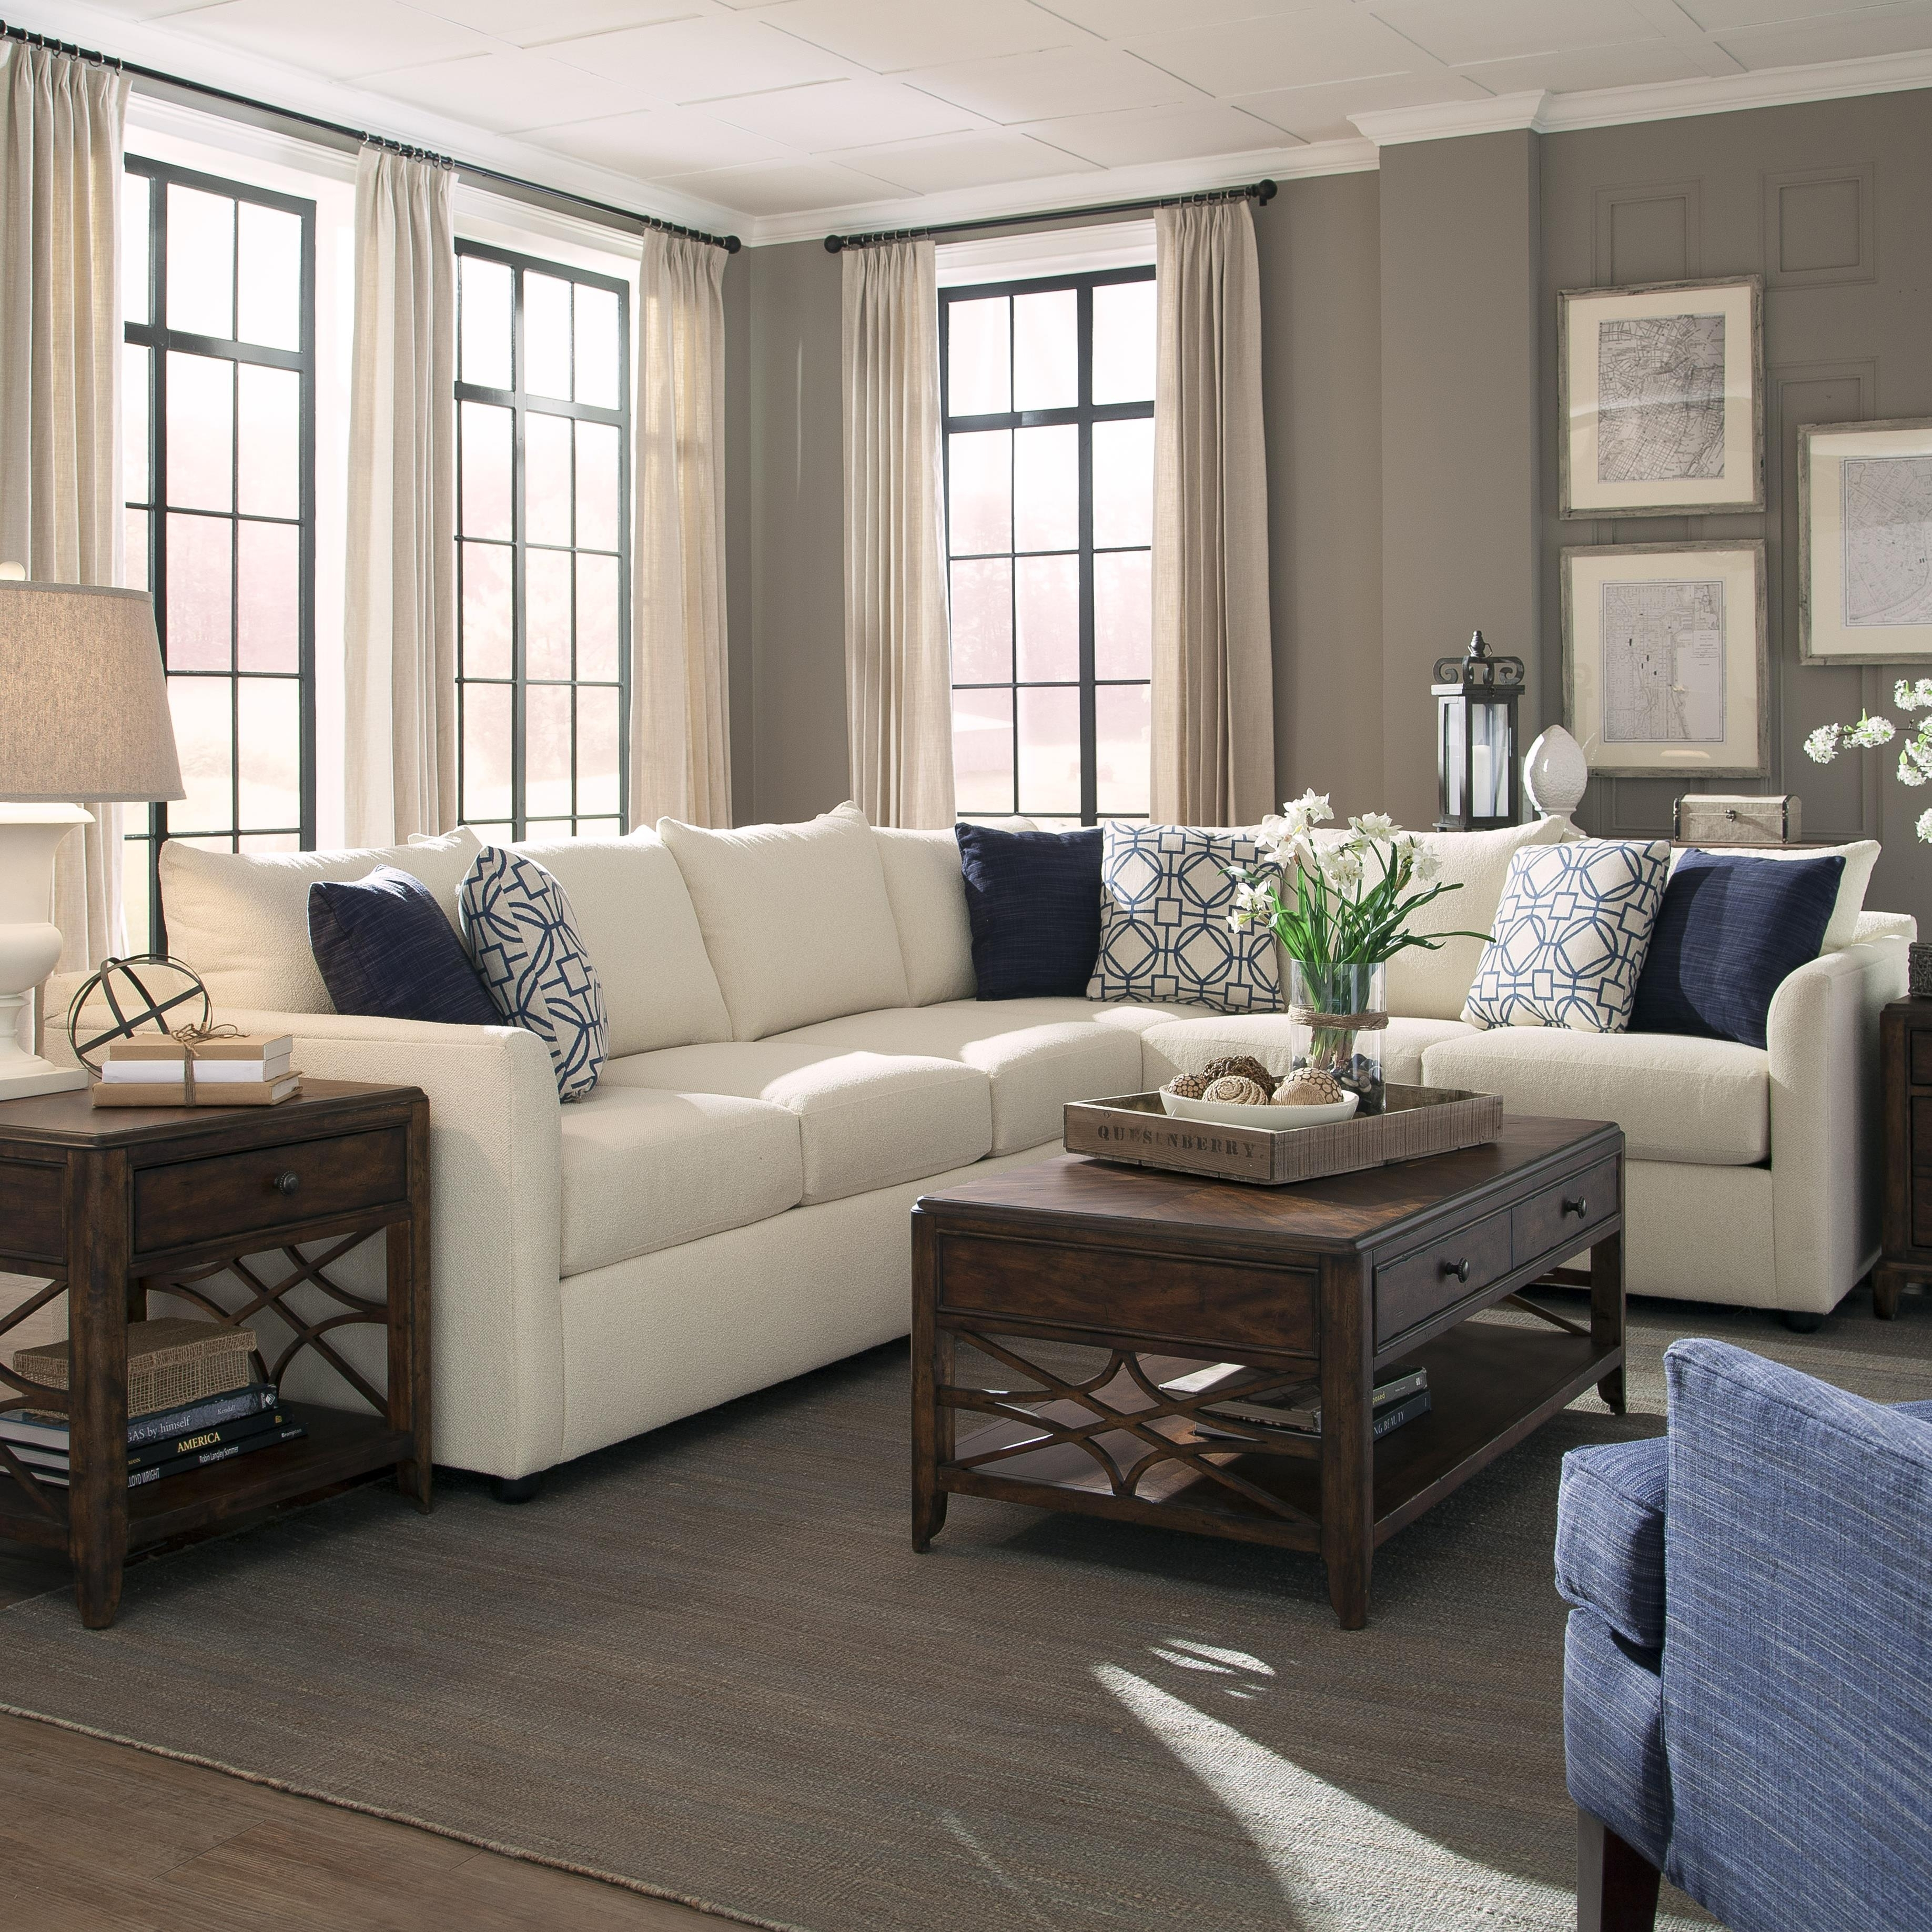 A Beautiful 2 Piece Sectional From Trisha Yearwood's Home Collection Throughout Sectional Sofas In Atlanta (View 6 of 10)